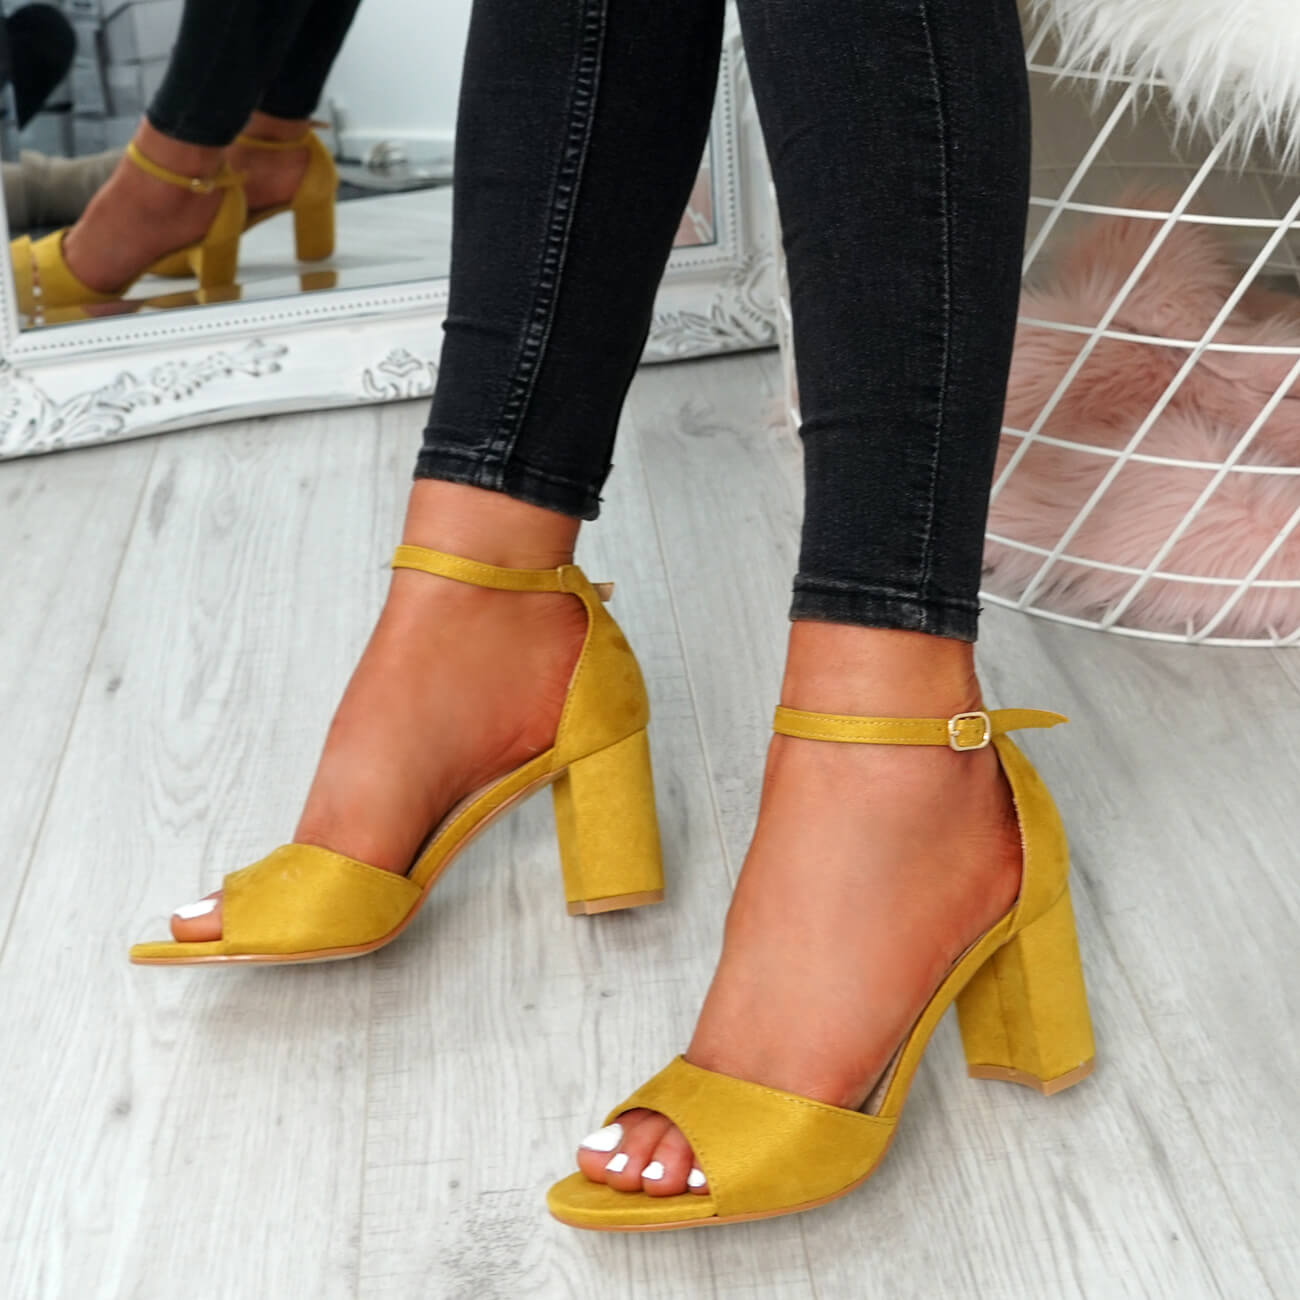 WOMENS-LADIES-ANKLE-STRAP-HIGH-BLOCK-HEEL-SANDALS-PEEP-TOE-PARTY-SHOES-SIZE thumbnail 34